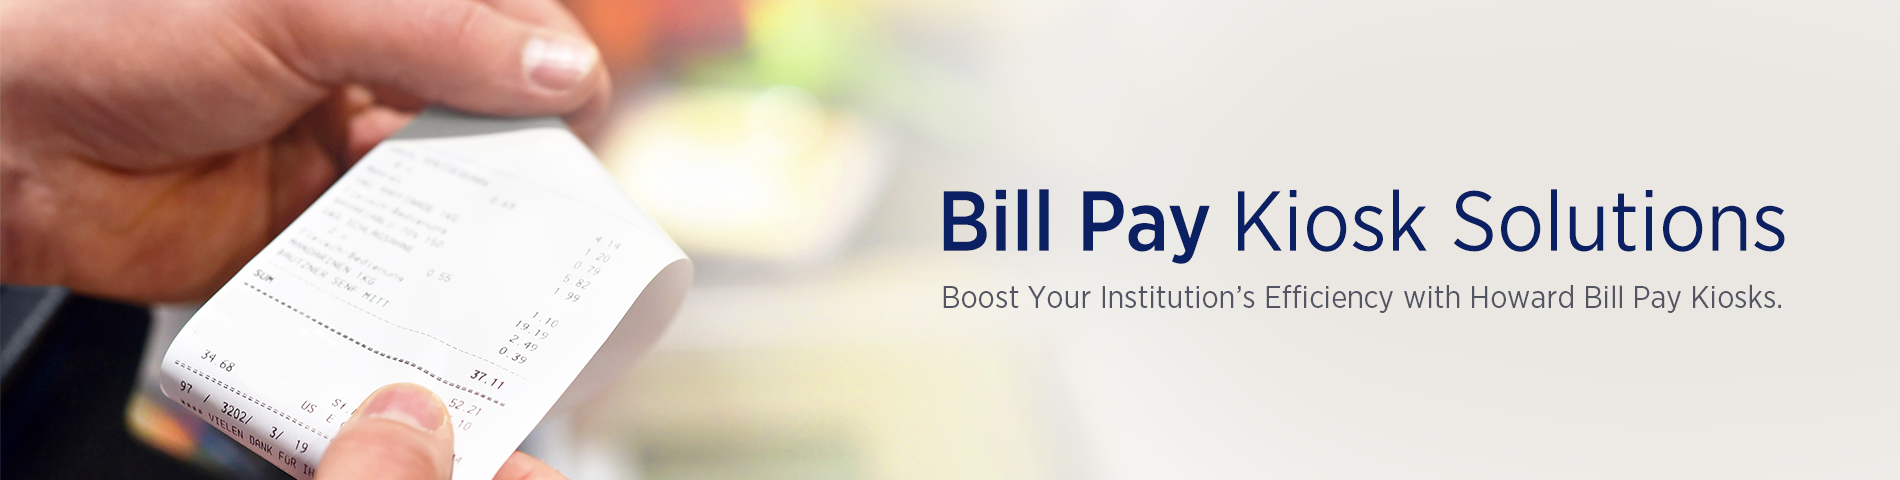 Bill Pay Solutions